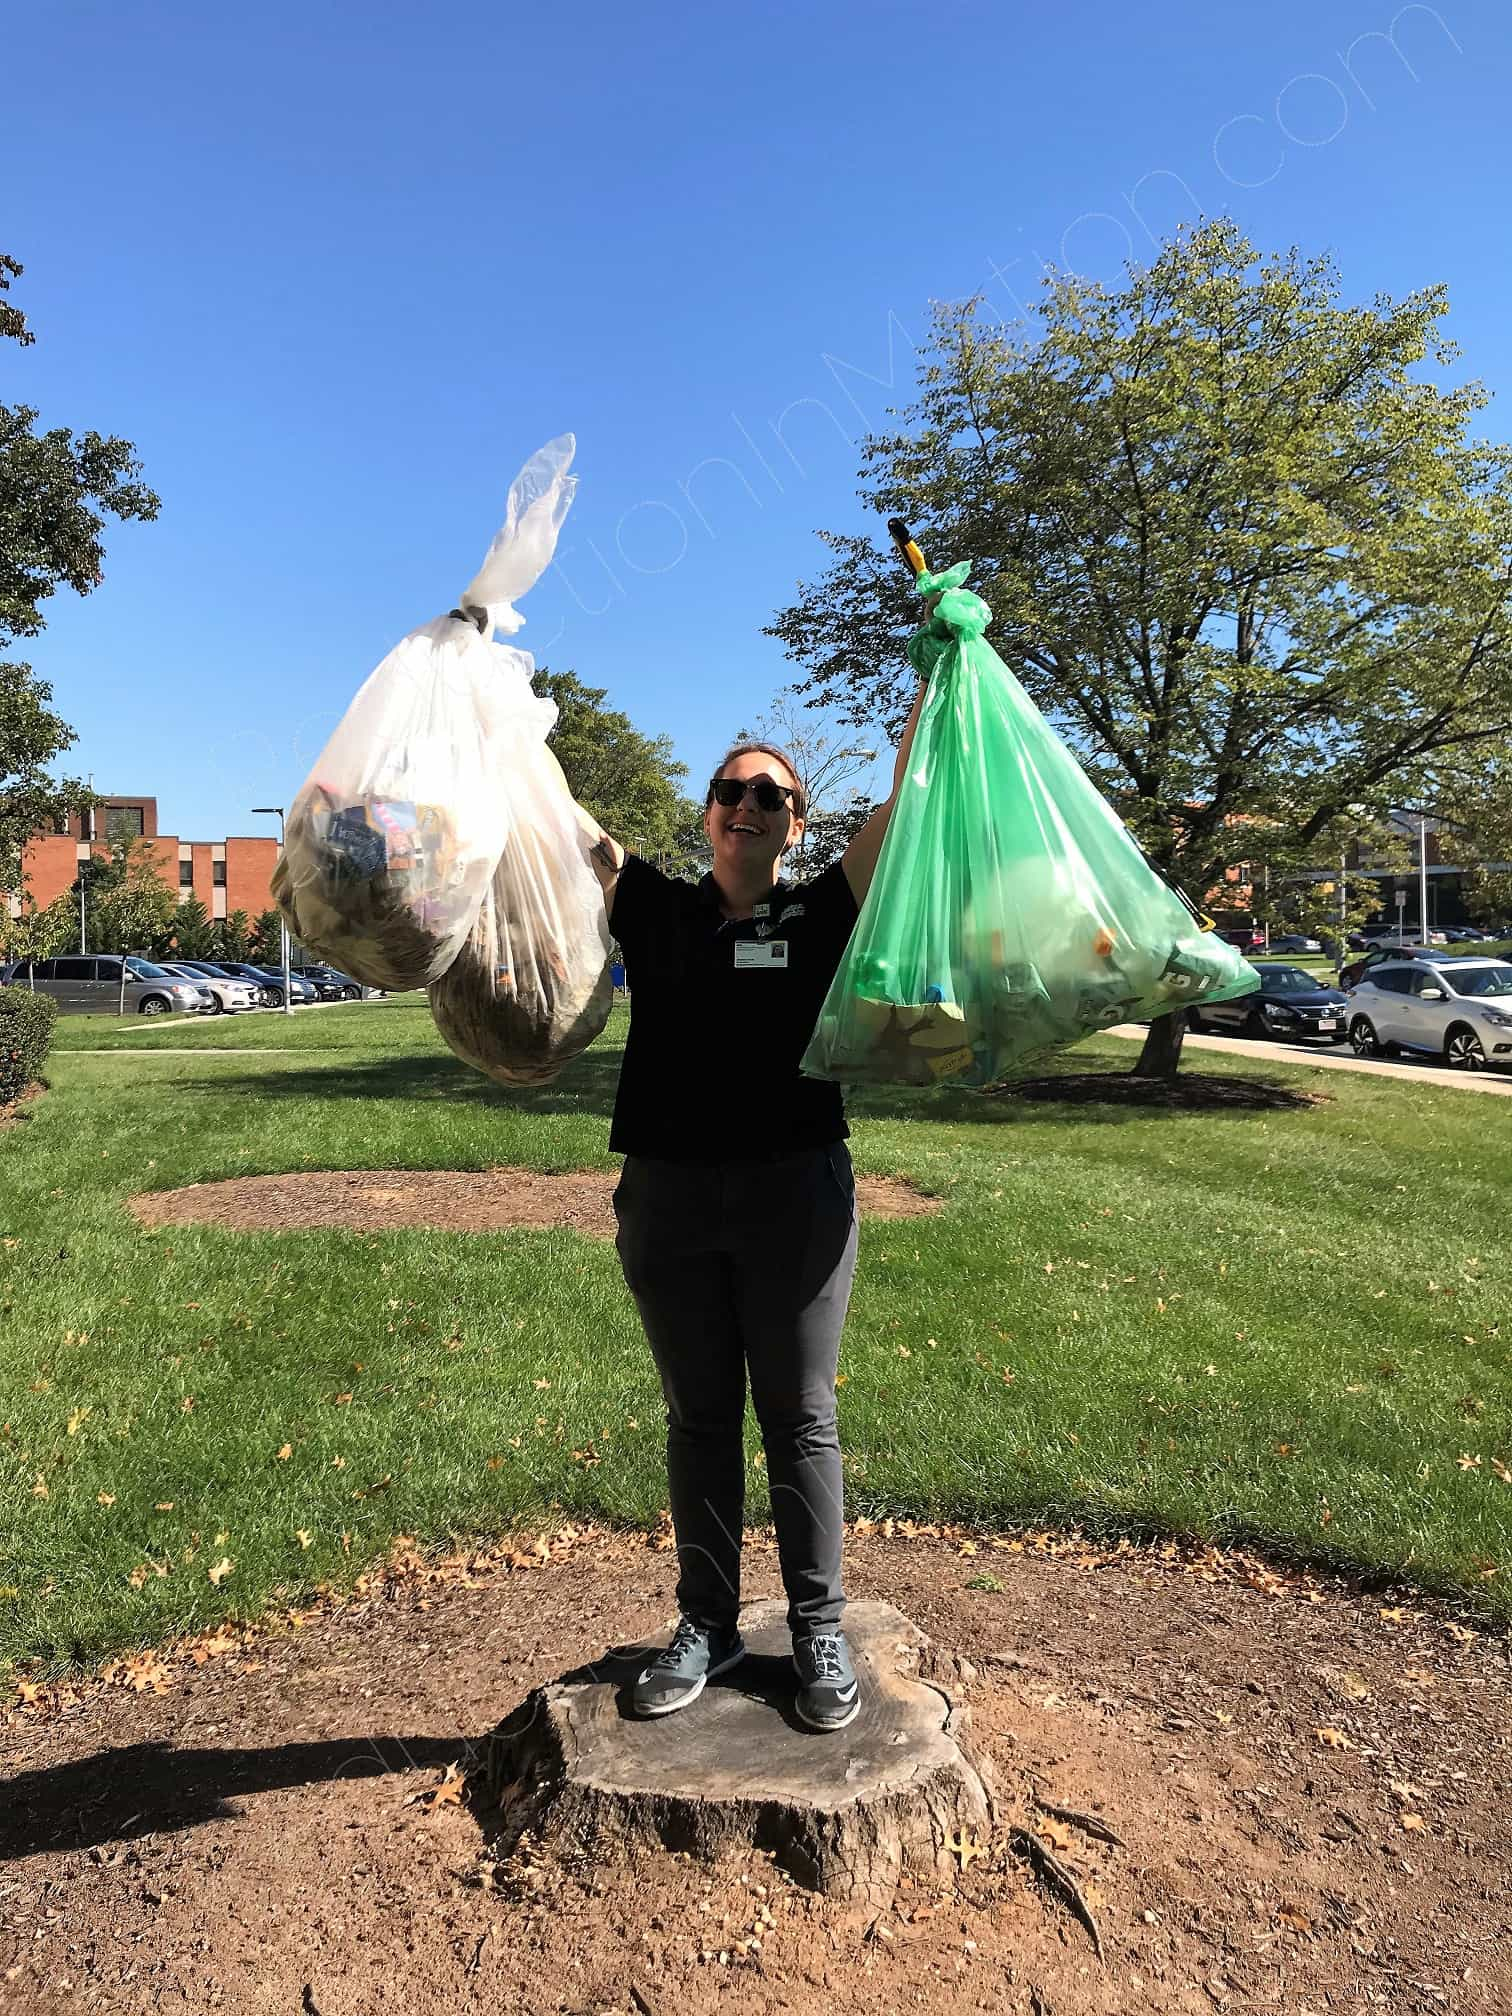 Person holding up bags of litter